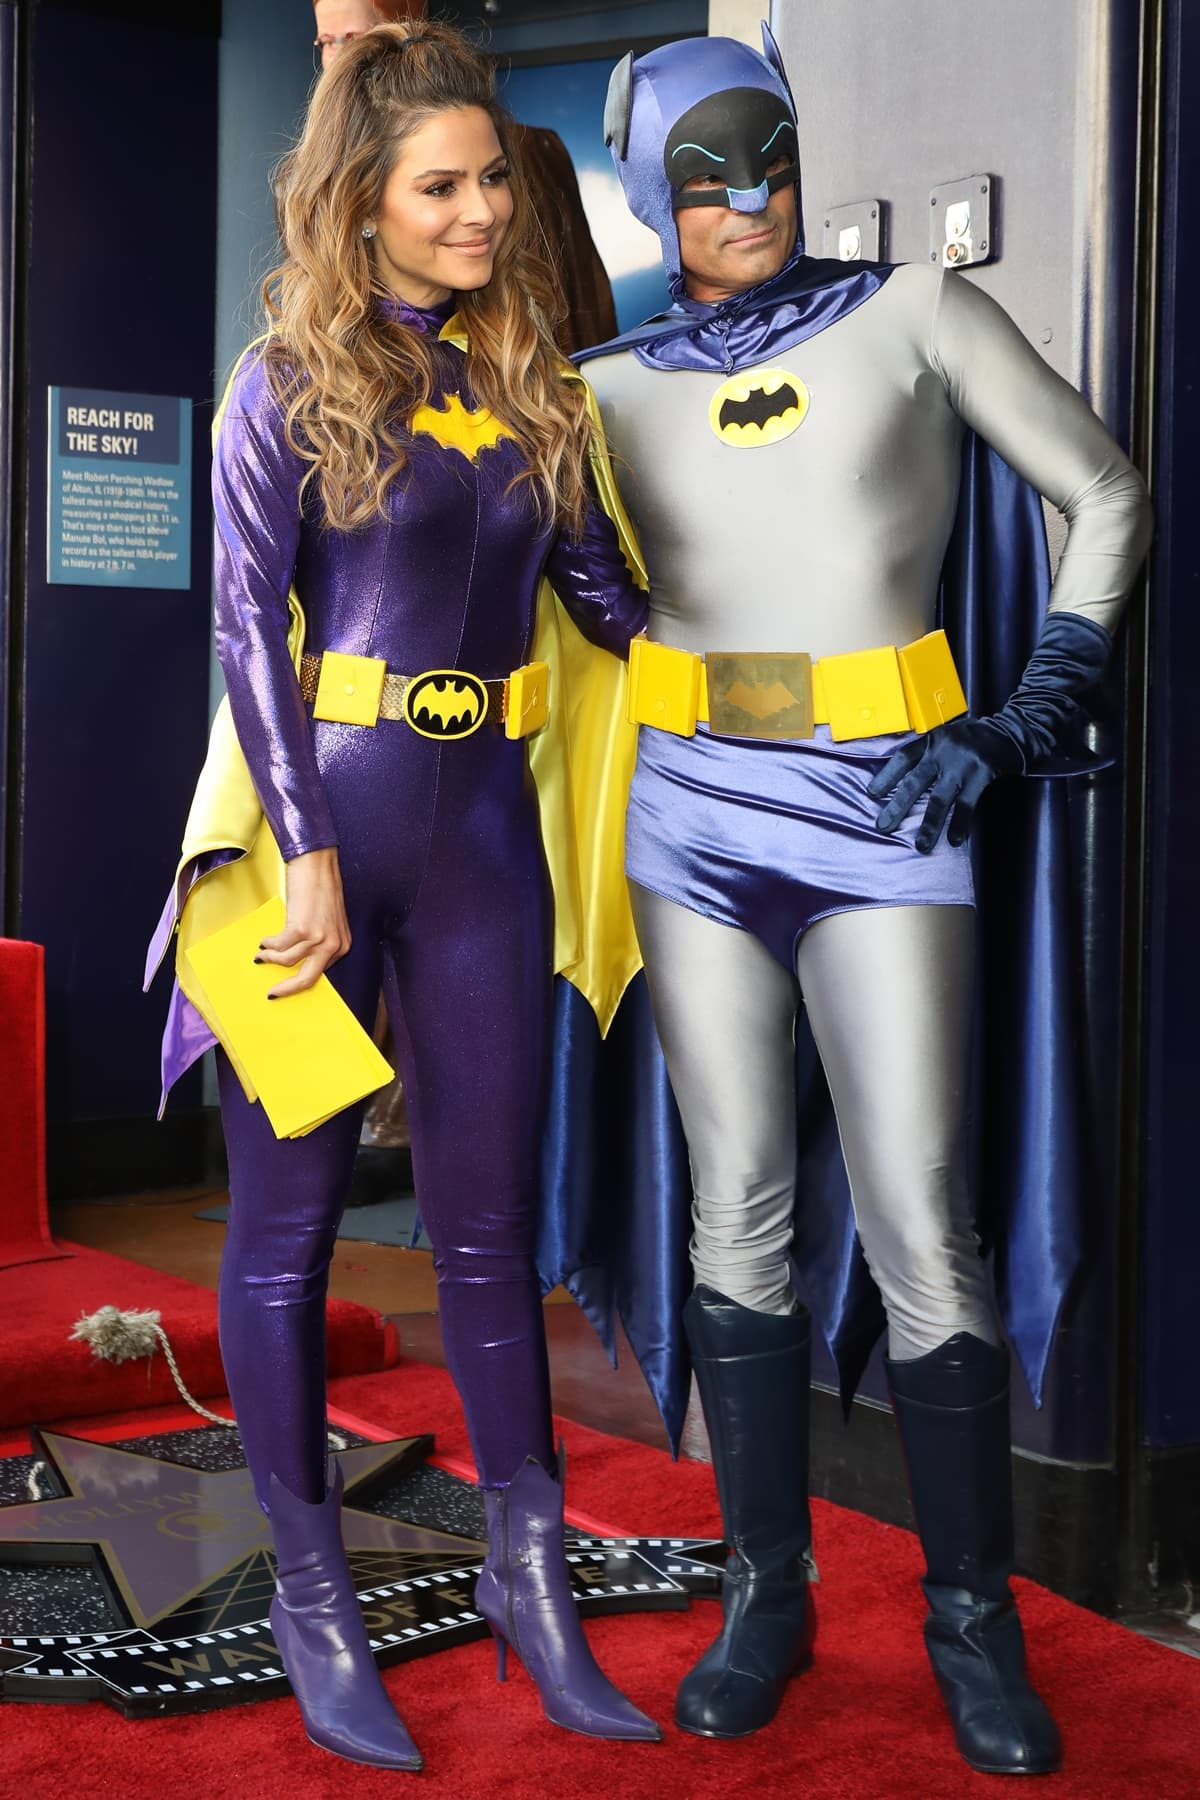 Maria Menounos and husband, Keven Undergaro attend the ceremony honoring Burt Ward with A Star on the Hollywood Walk of Fame